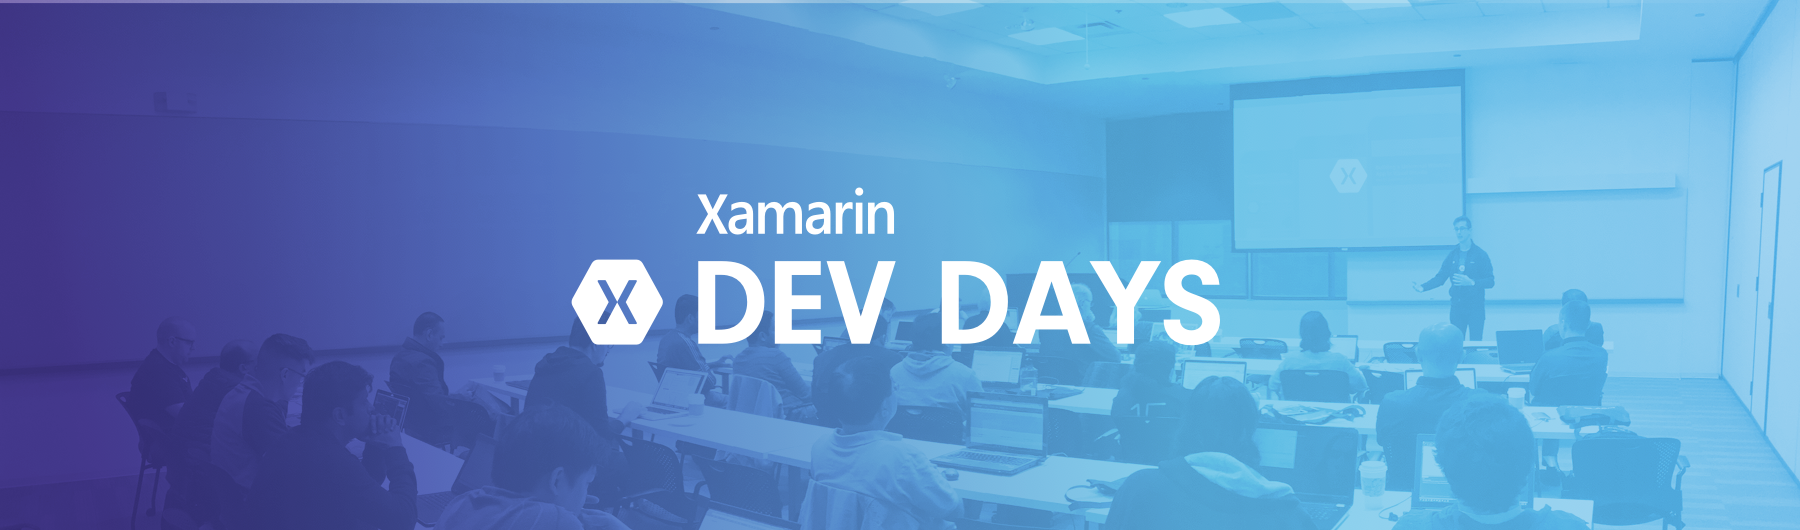 Xamarin Dev Days - Cairo